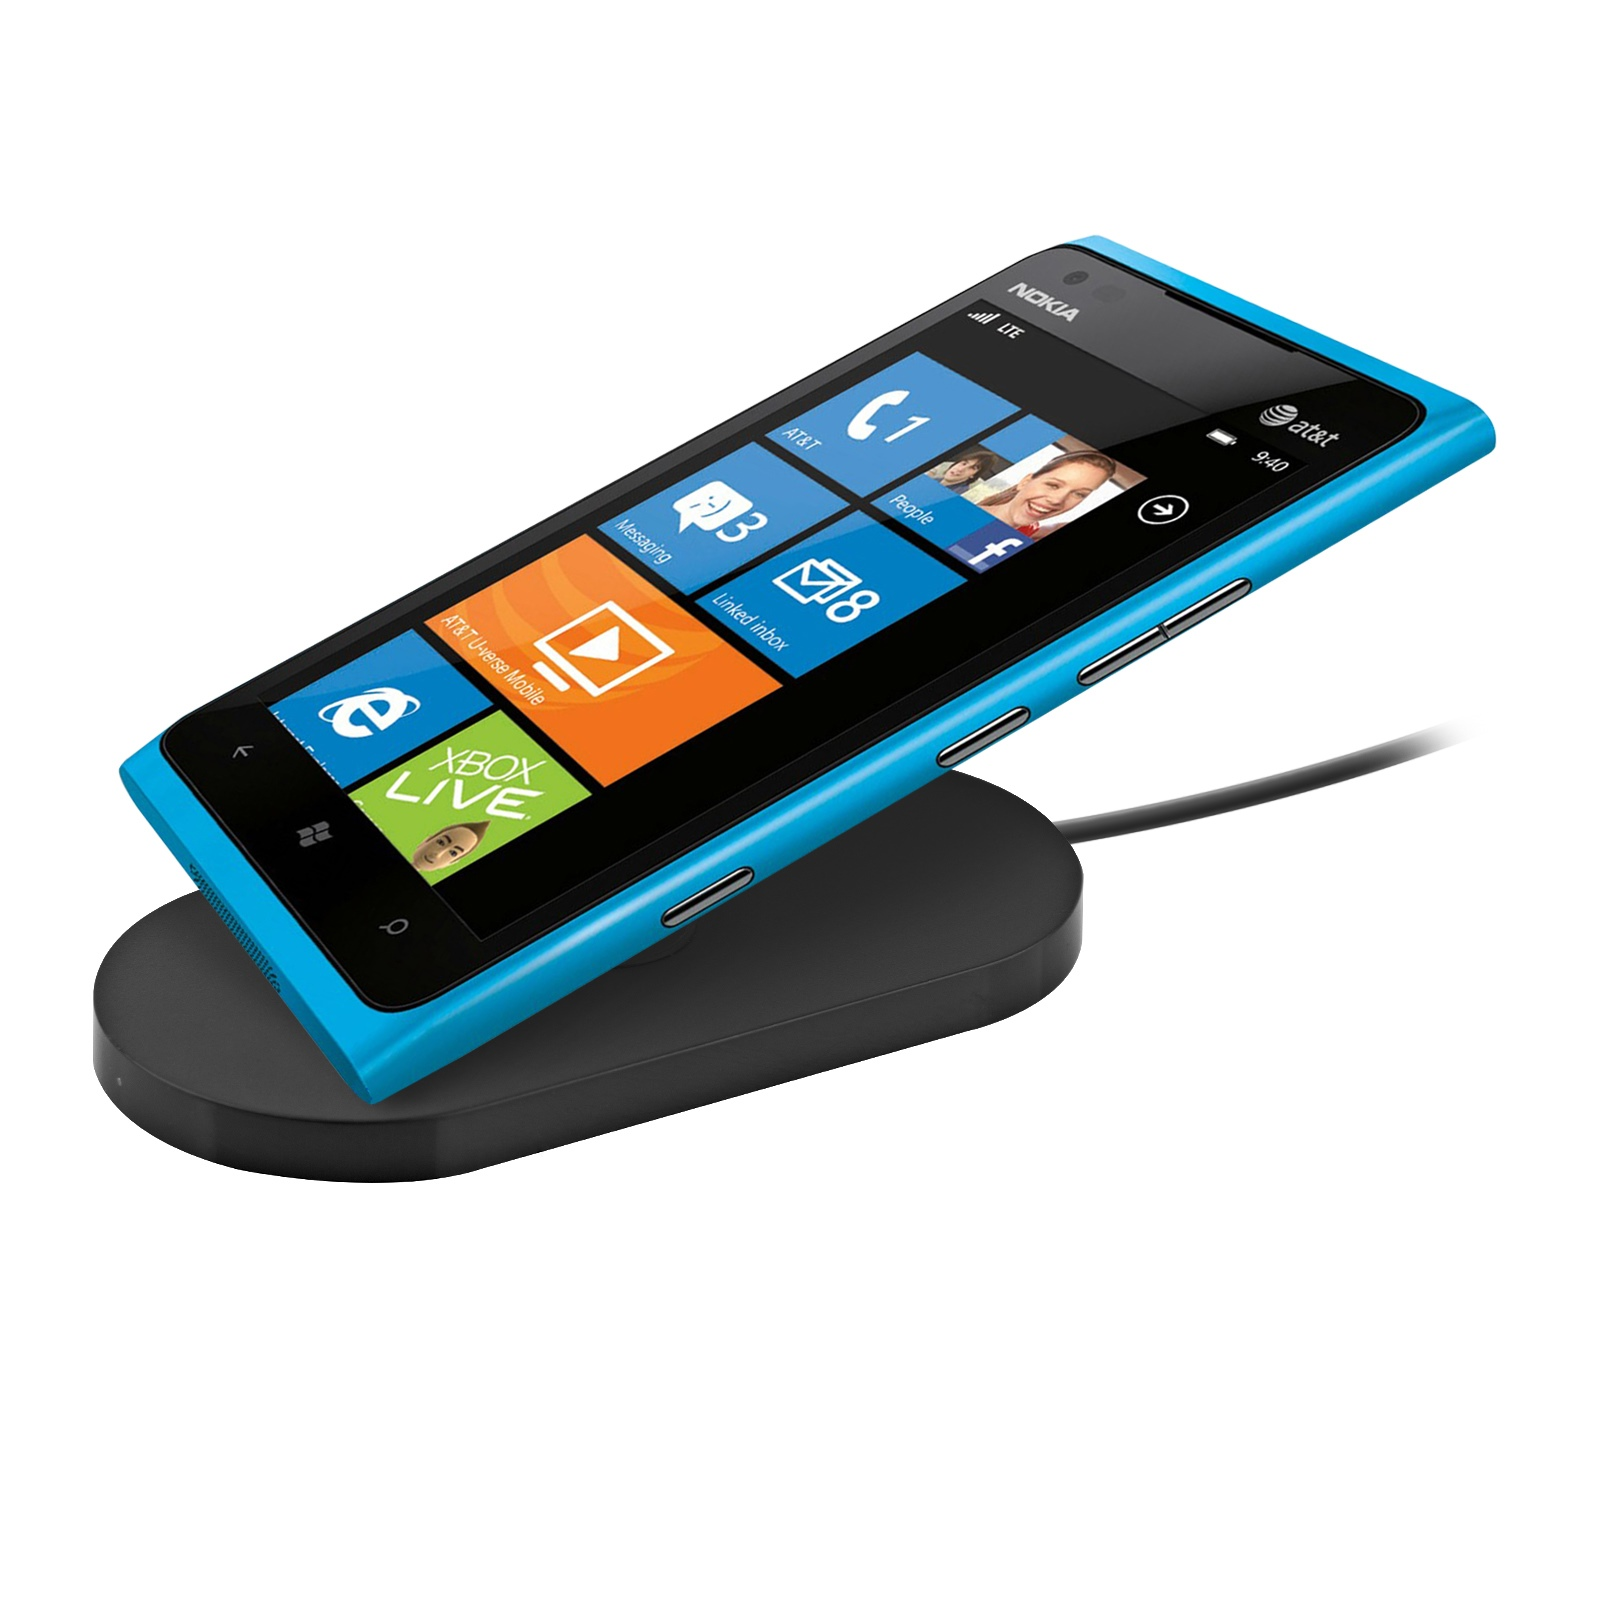 Android and nokia dt 900 wireless charging pad could easily